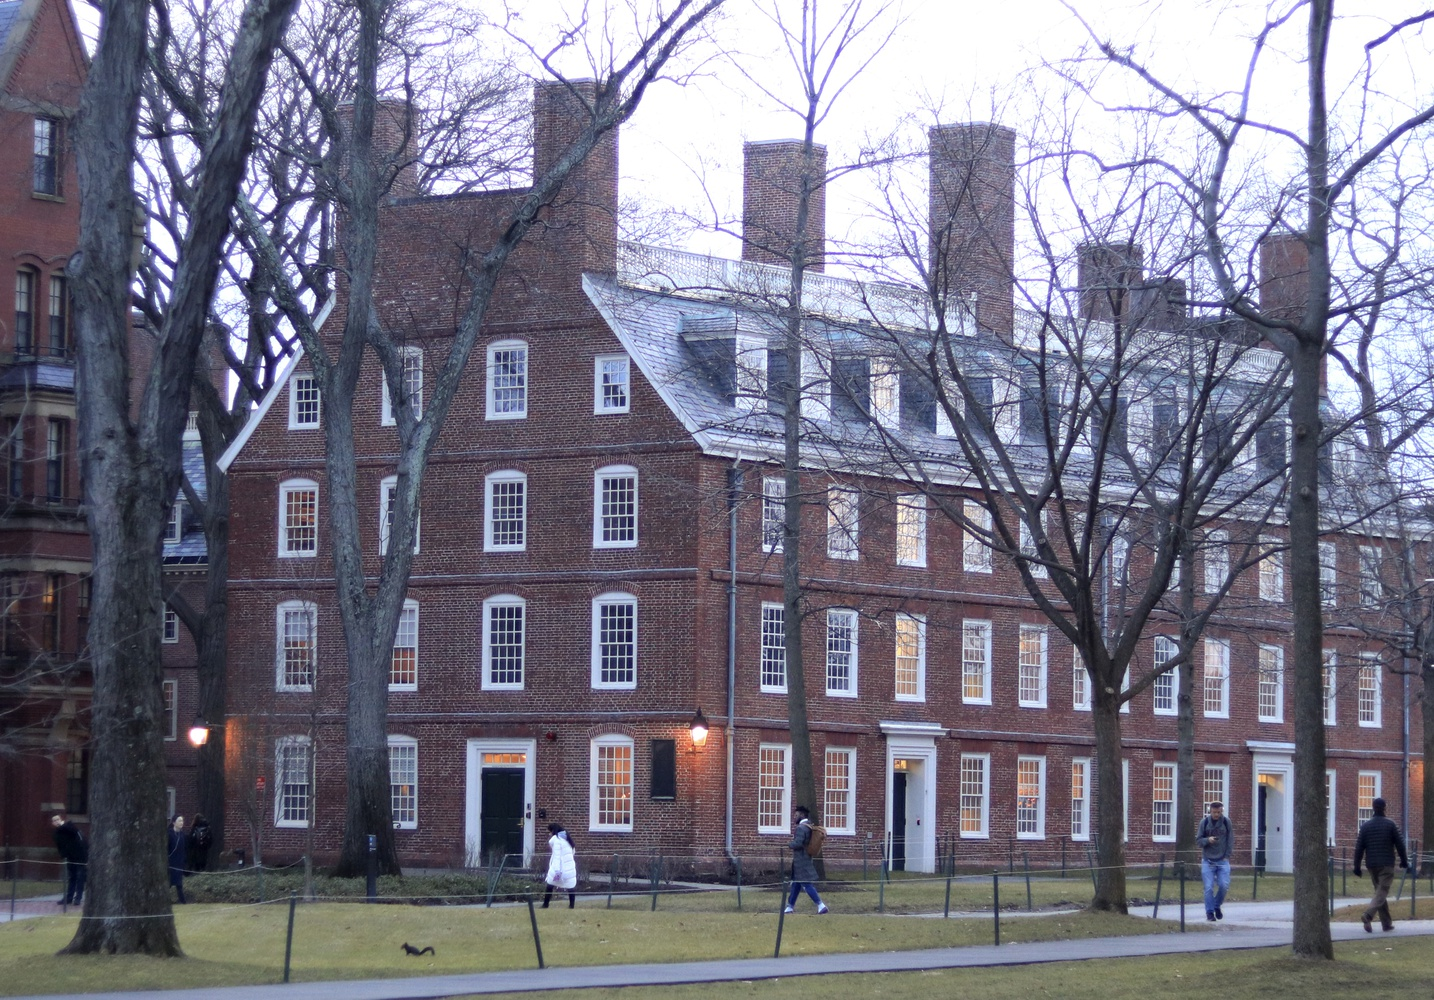 The U.S. Department of Education has launched an investigation into foreign research funding at several American universities, including Harvard.